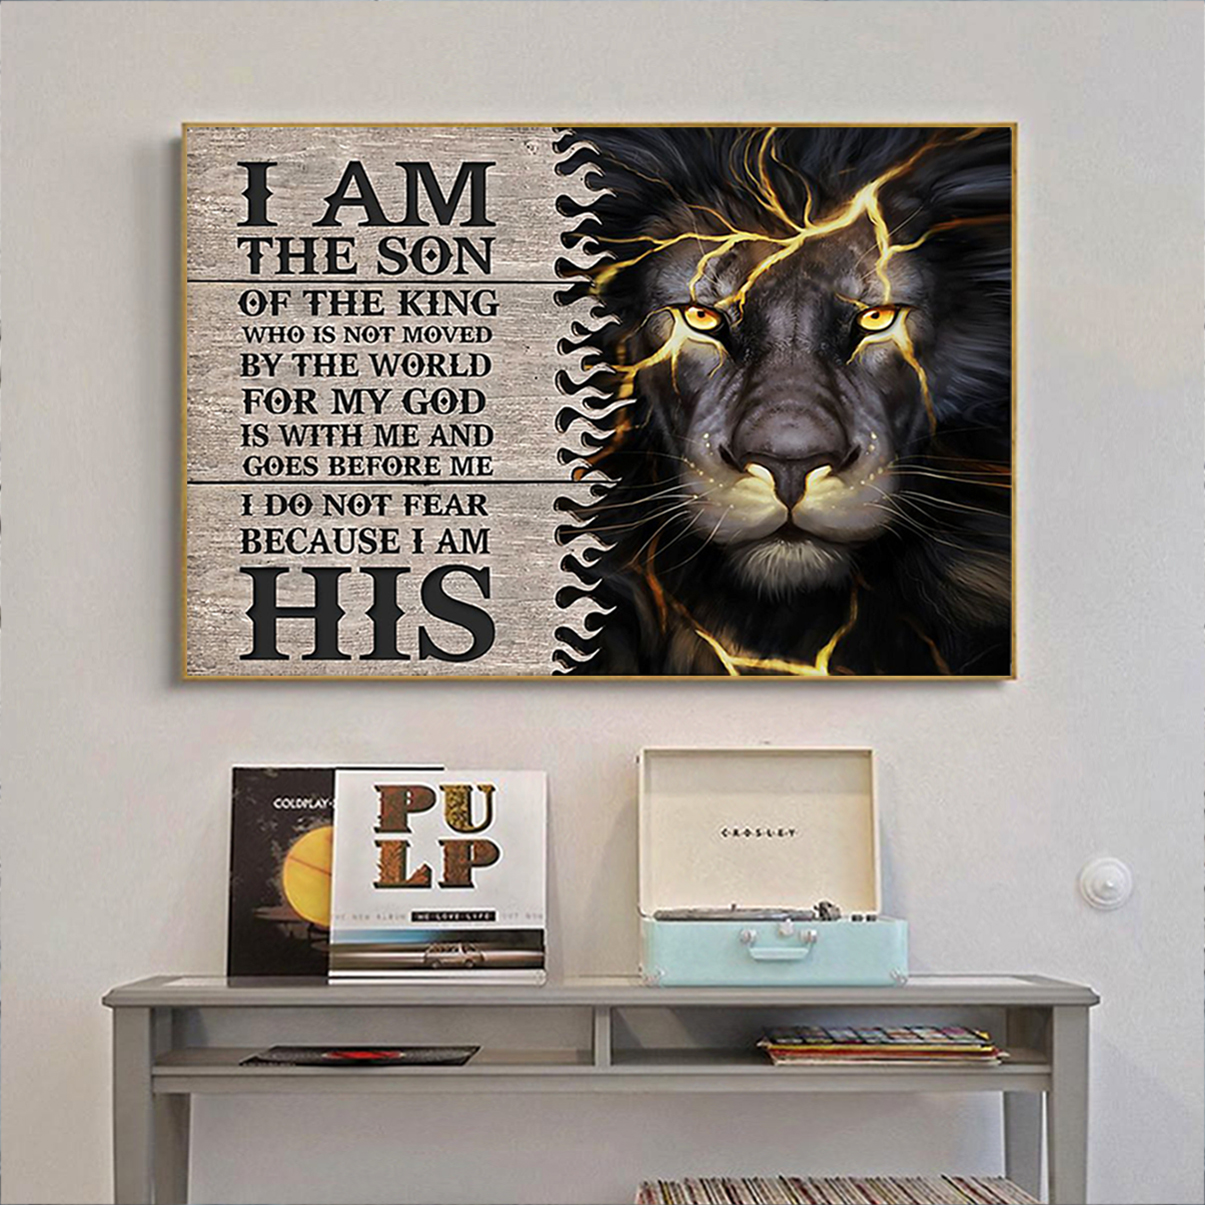 Lion thunder I am the son of the king poster A2